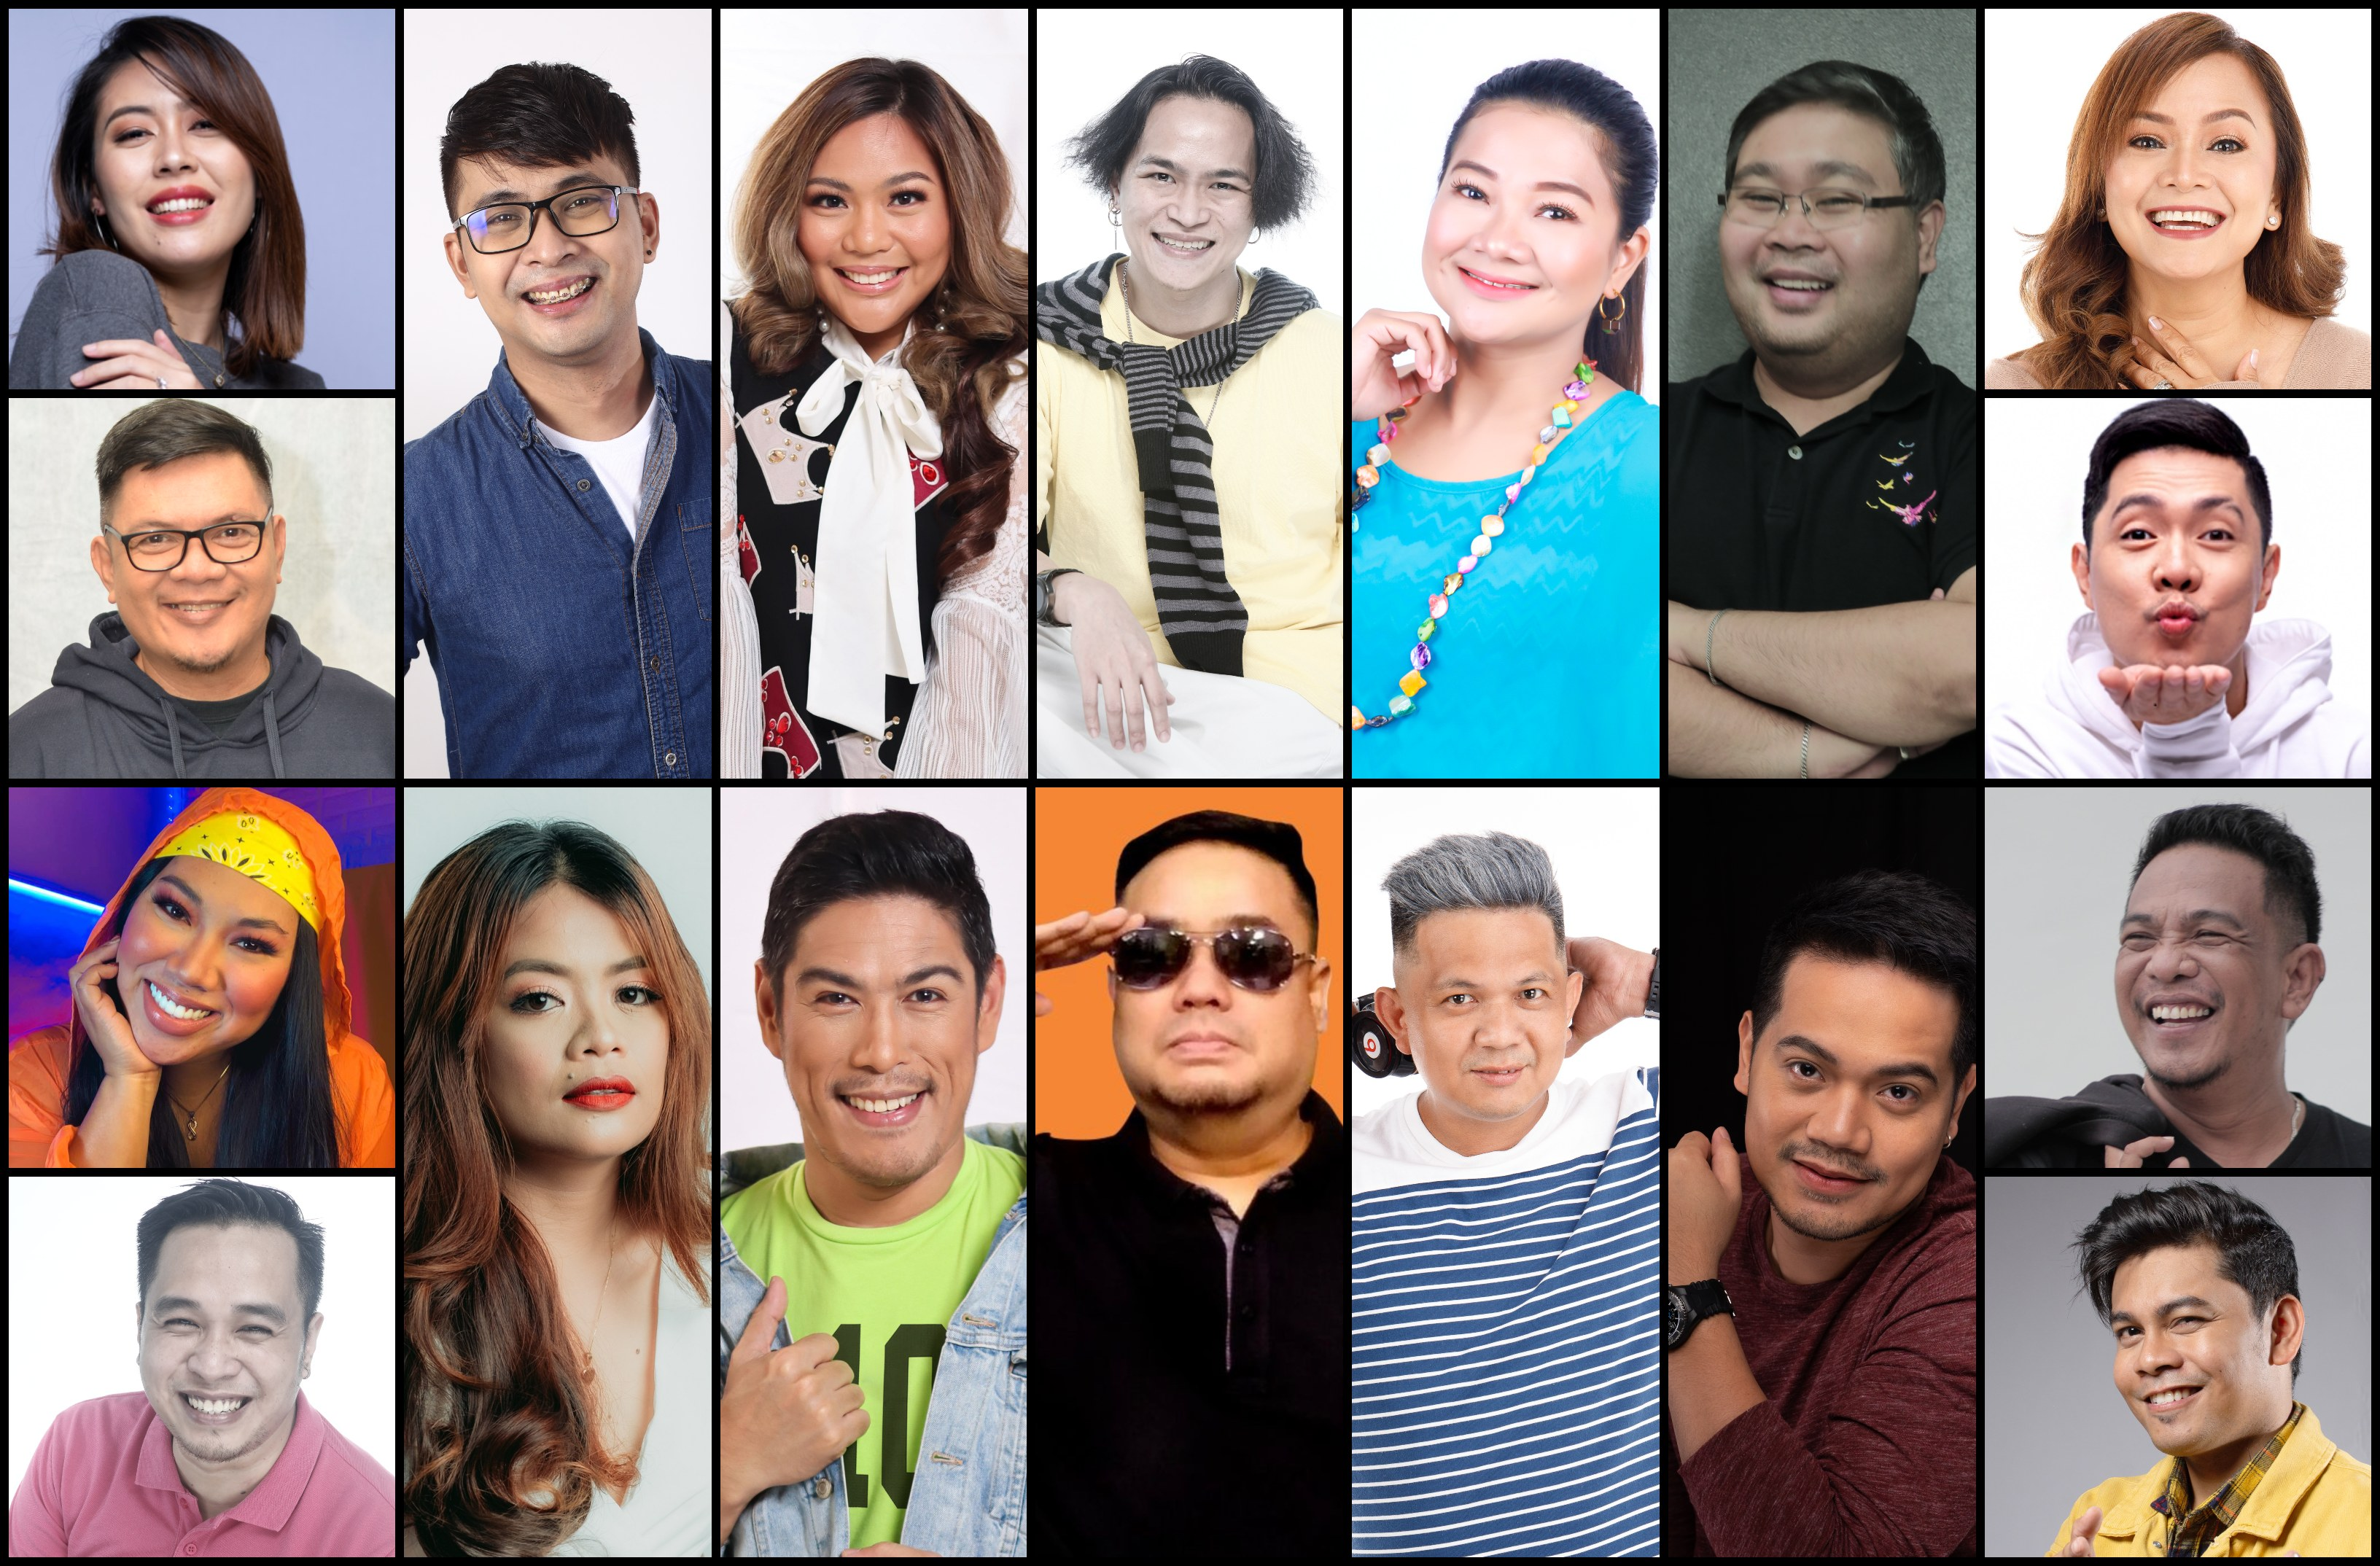 Kapamilya personalities across the Philippines unite to bring more online fun via MOR Entertainment